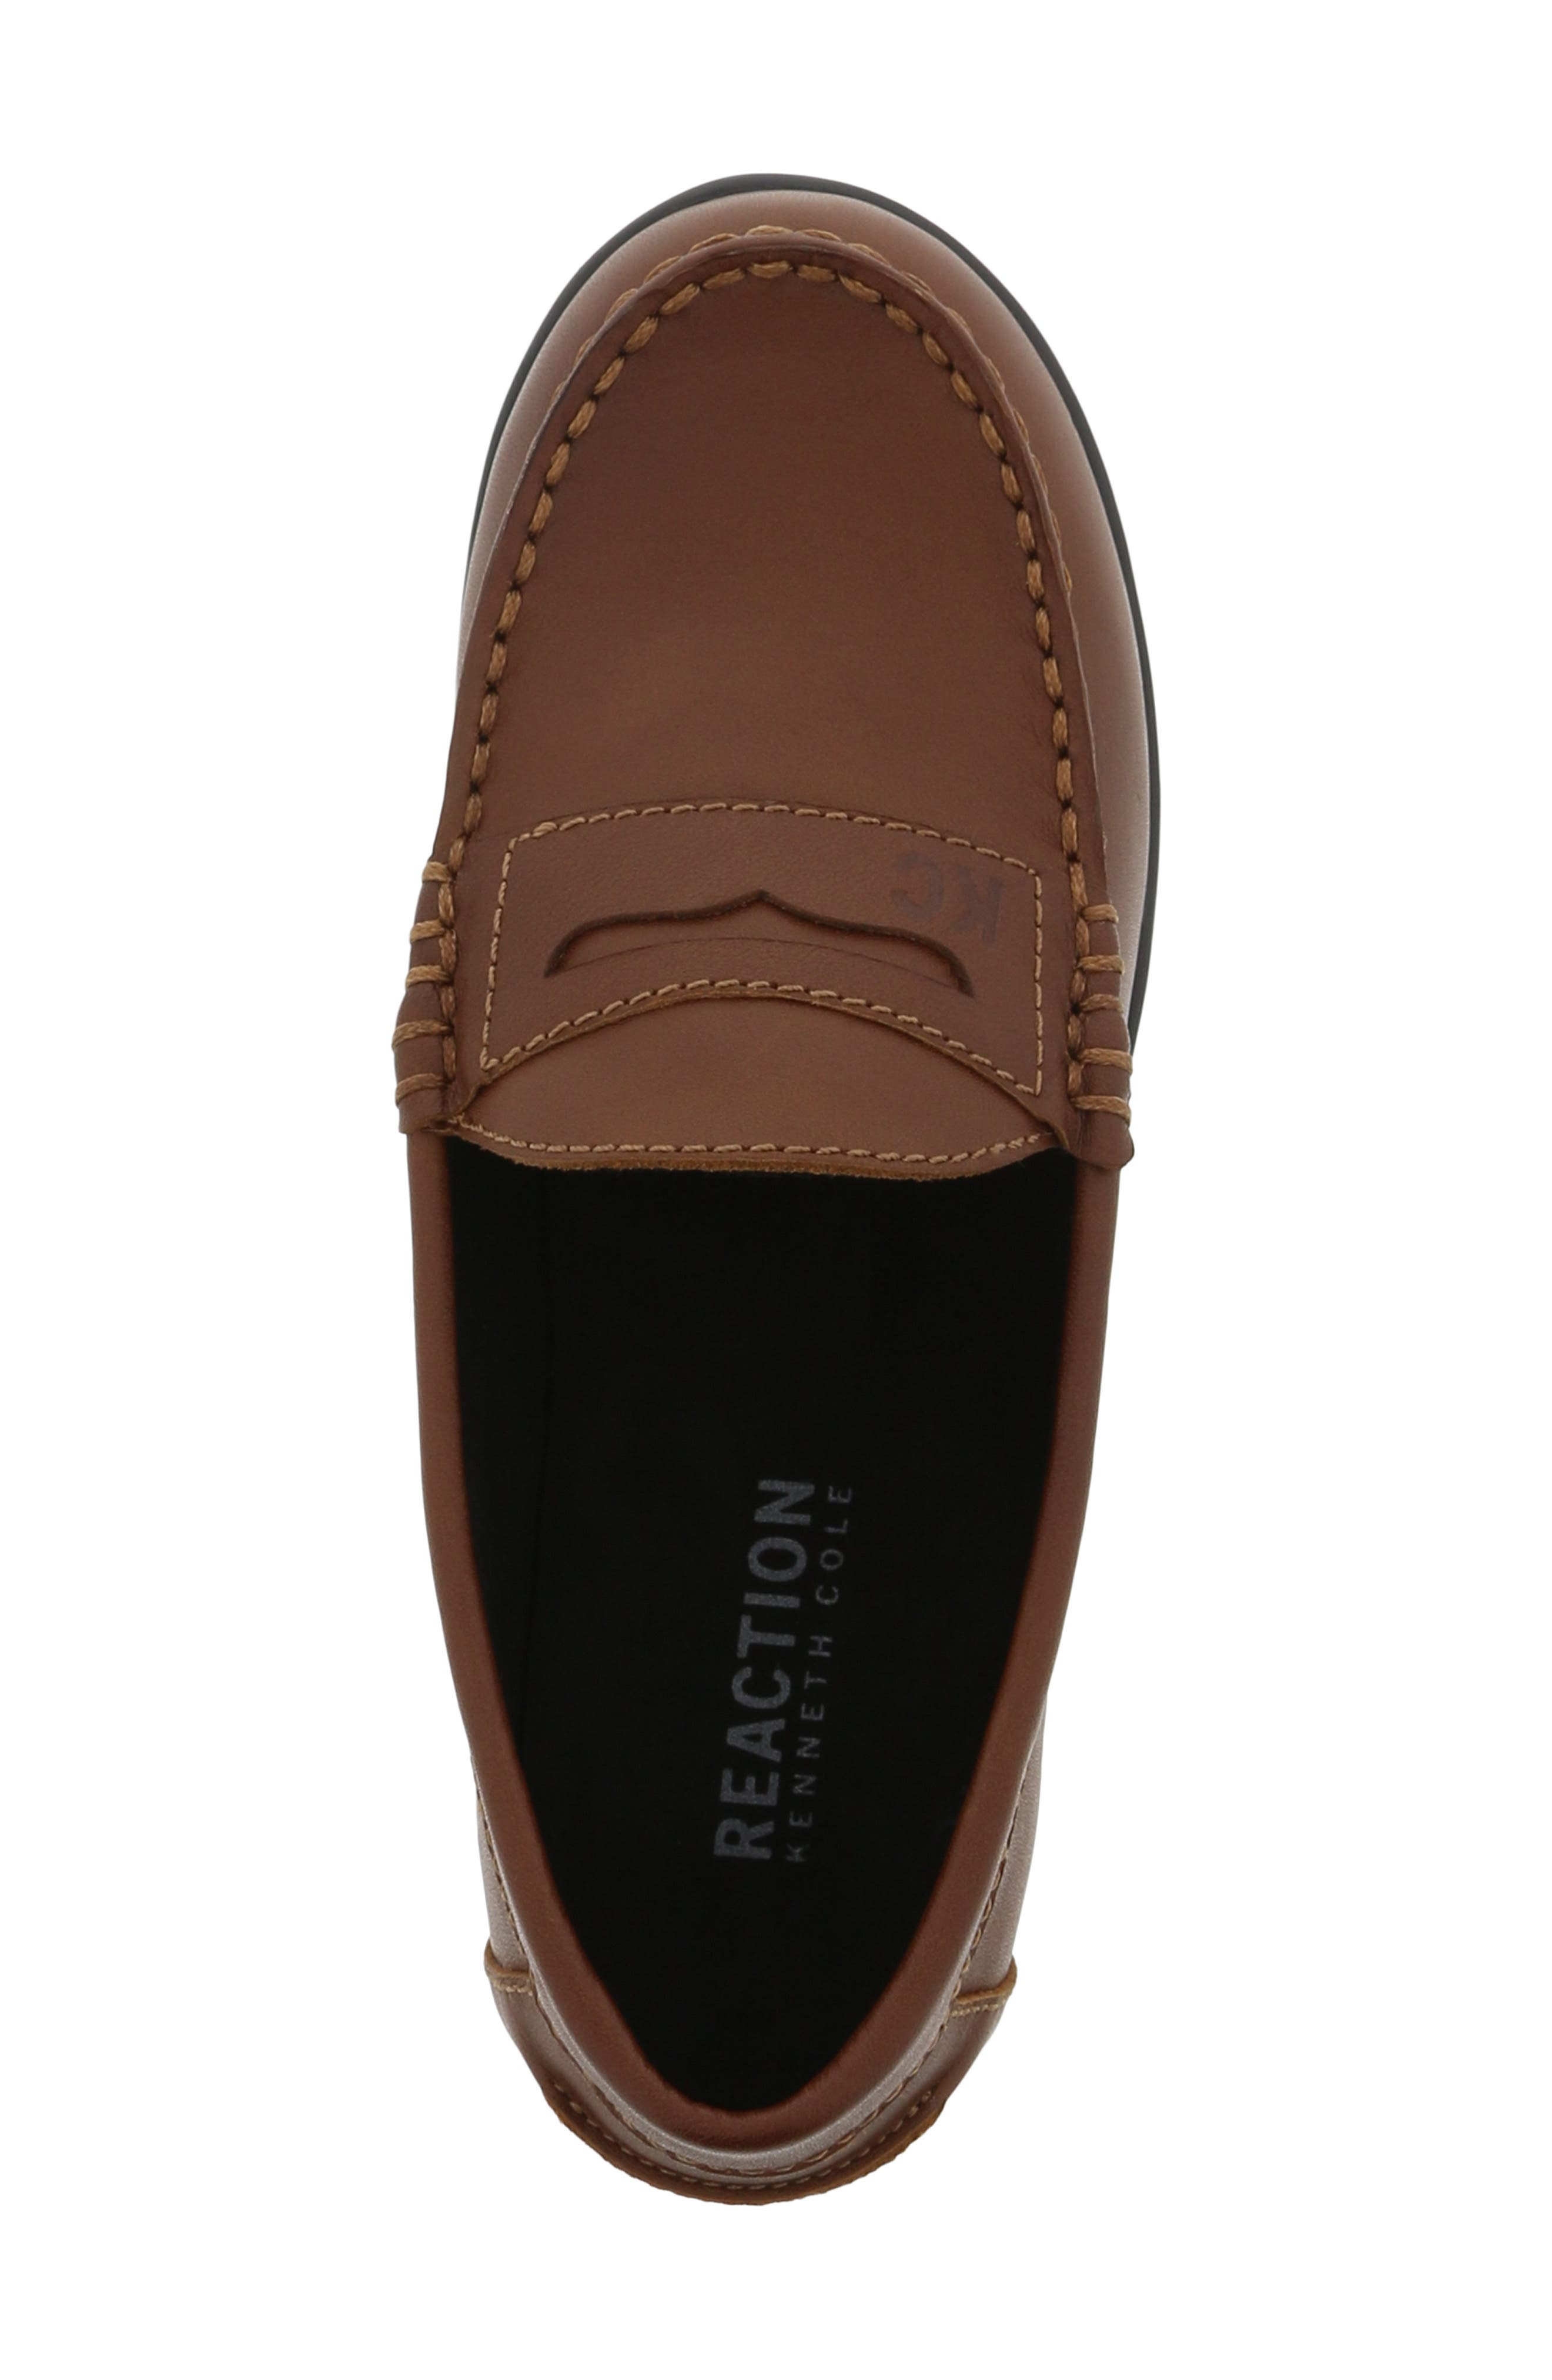 REACTION KENNETH COLE, Helio Gear Loafer, Alternate thumbnail 5, color, COGNAC